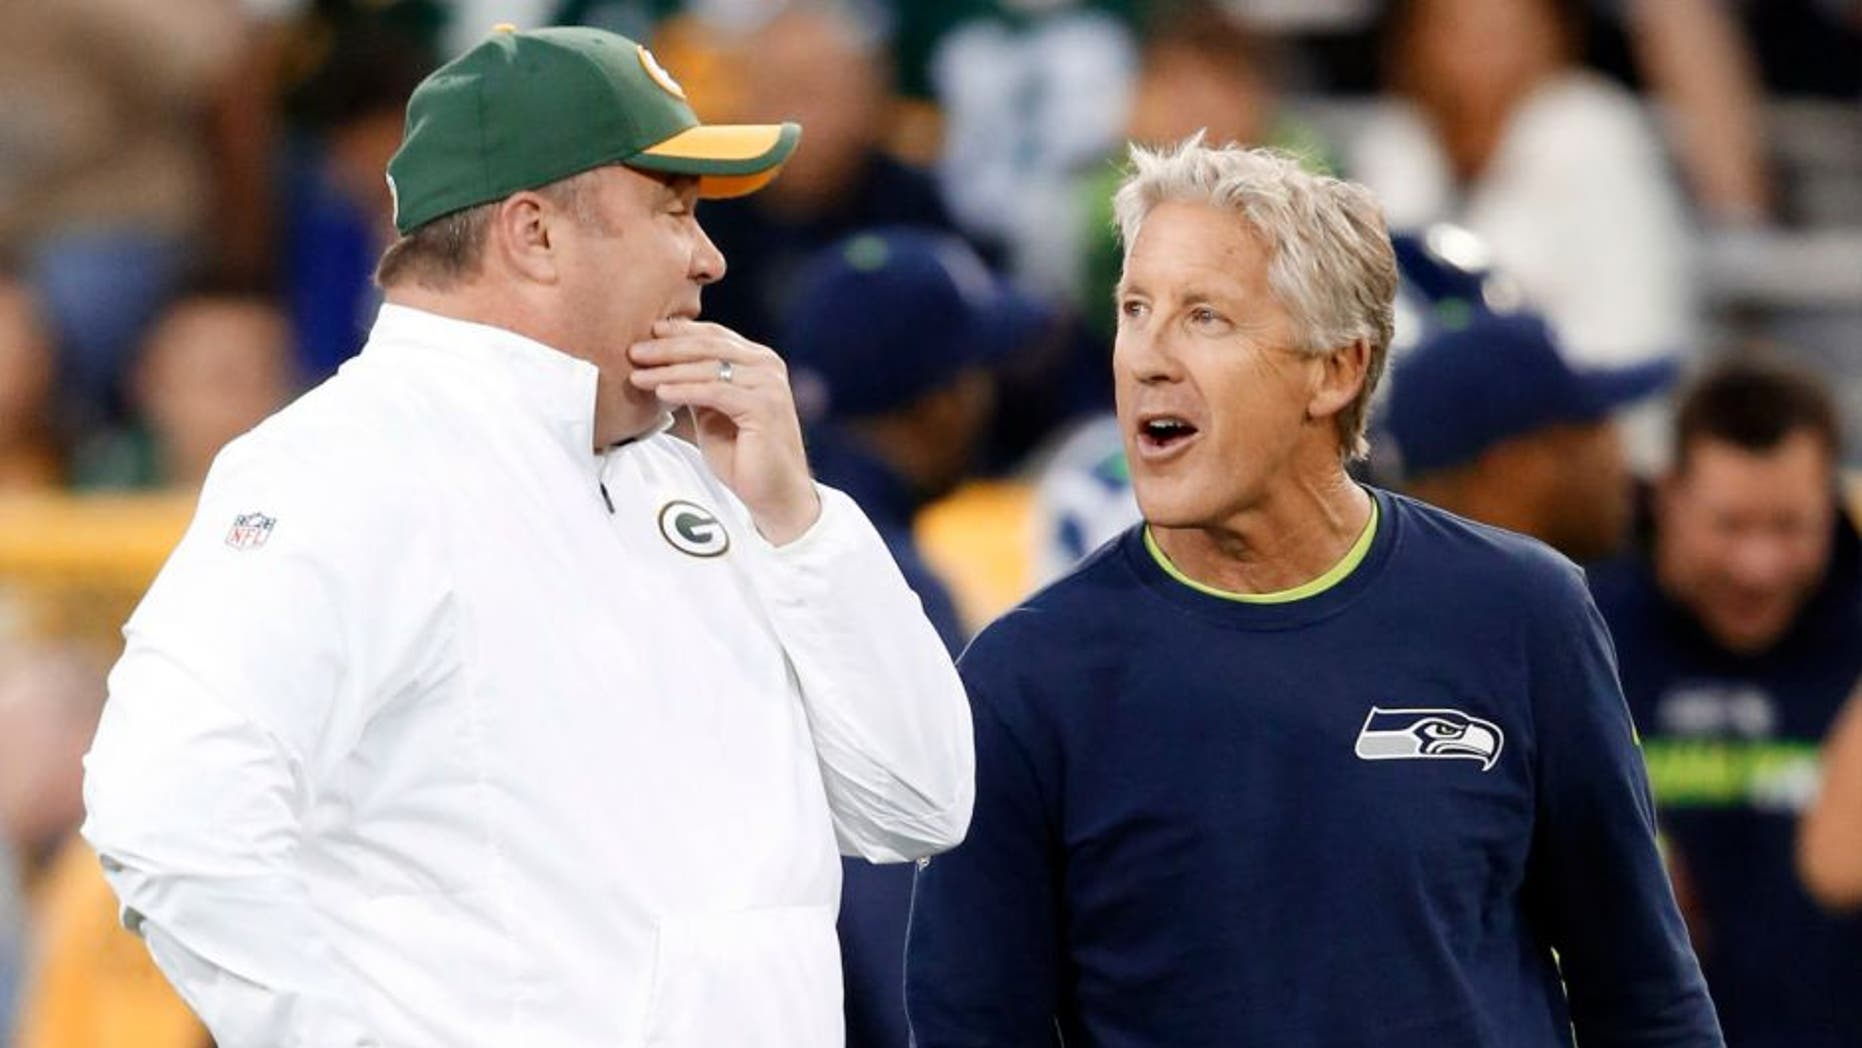 Green Bay Packers head coach Mike McCarthy (left) talks to Seattle Seahawks head coach Pete Carroll before an NFL football game Sunday, Sept. 20, 2015, in Green Bay, Wis.